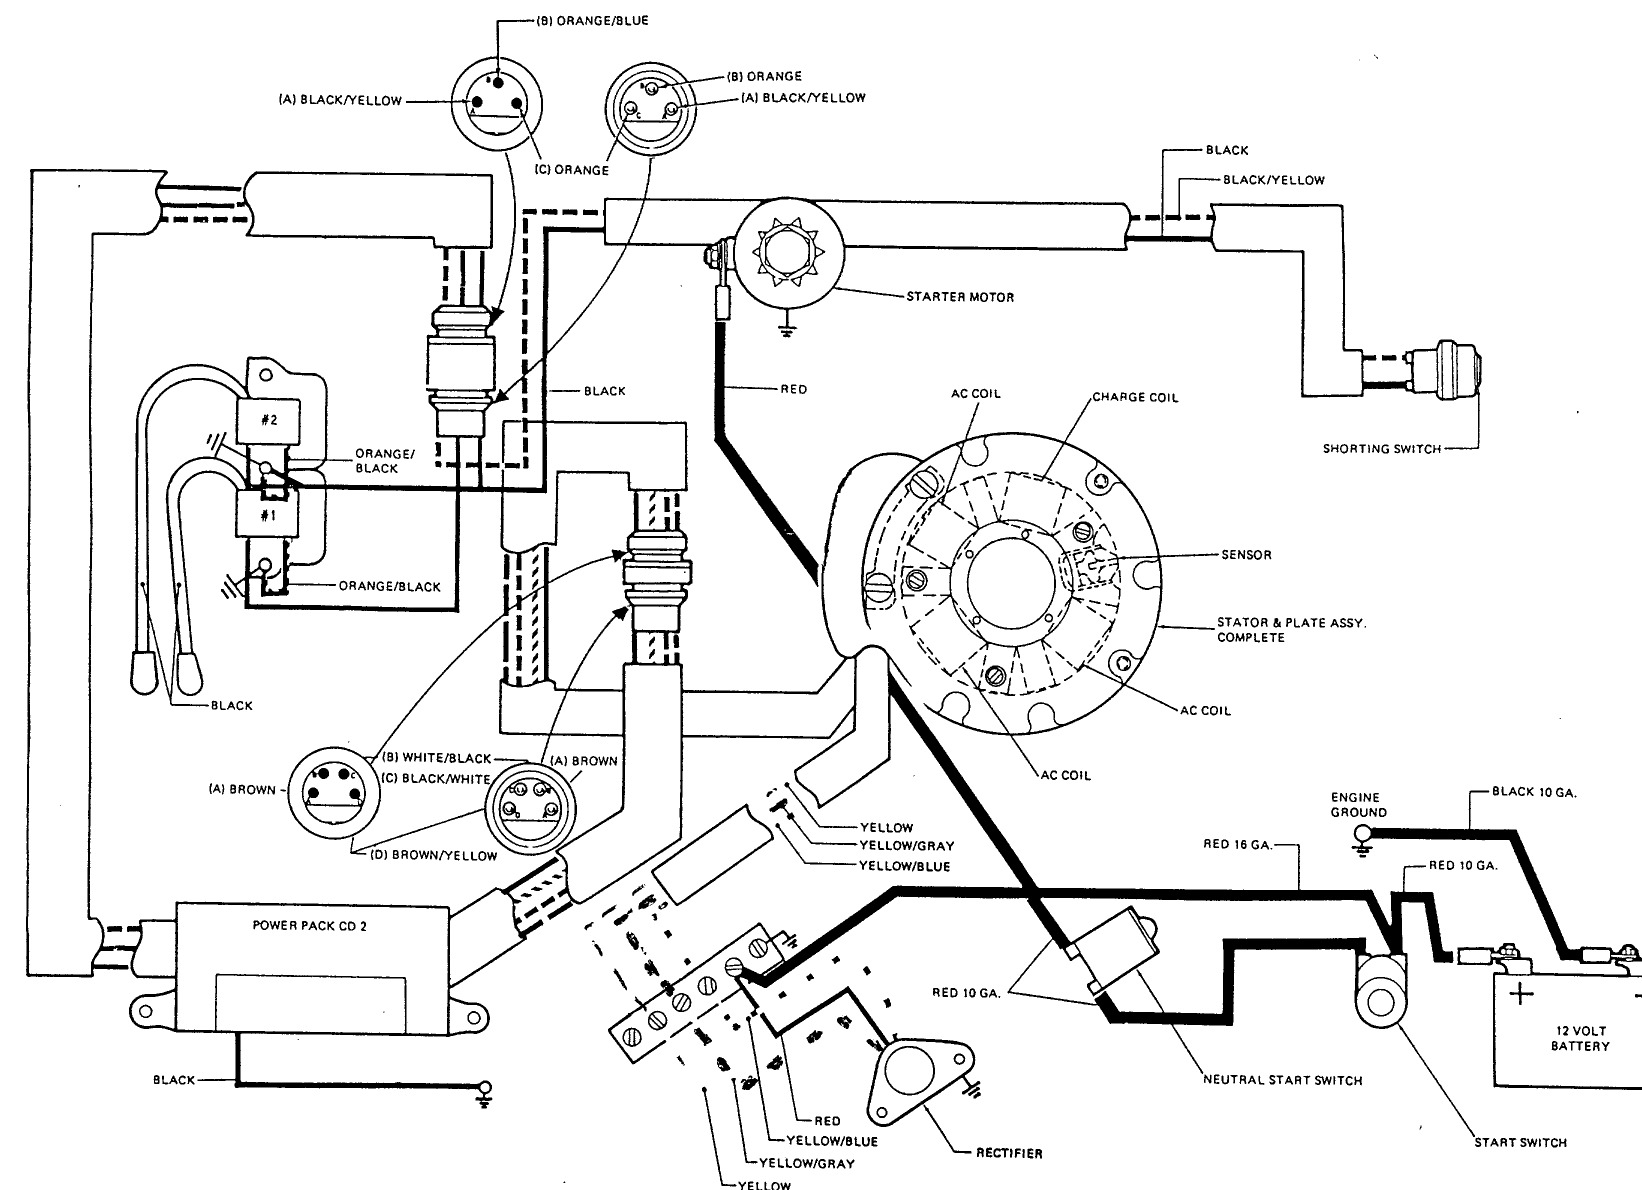 Mercury Optimax Tachometer Wiring Diagram in addition Johnson 20 8hp furthermore Tiller Handle Kit also Johnson troubleshooting also Id4. on 35 hp mercury wiring diagram